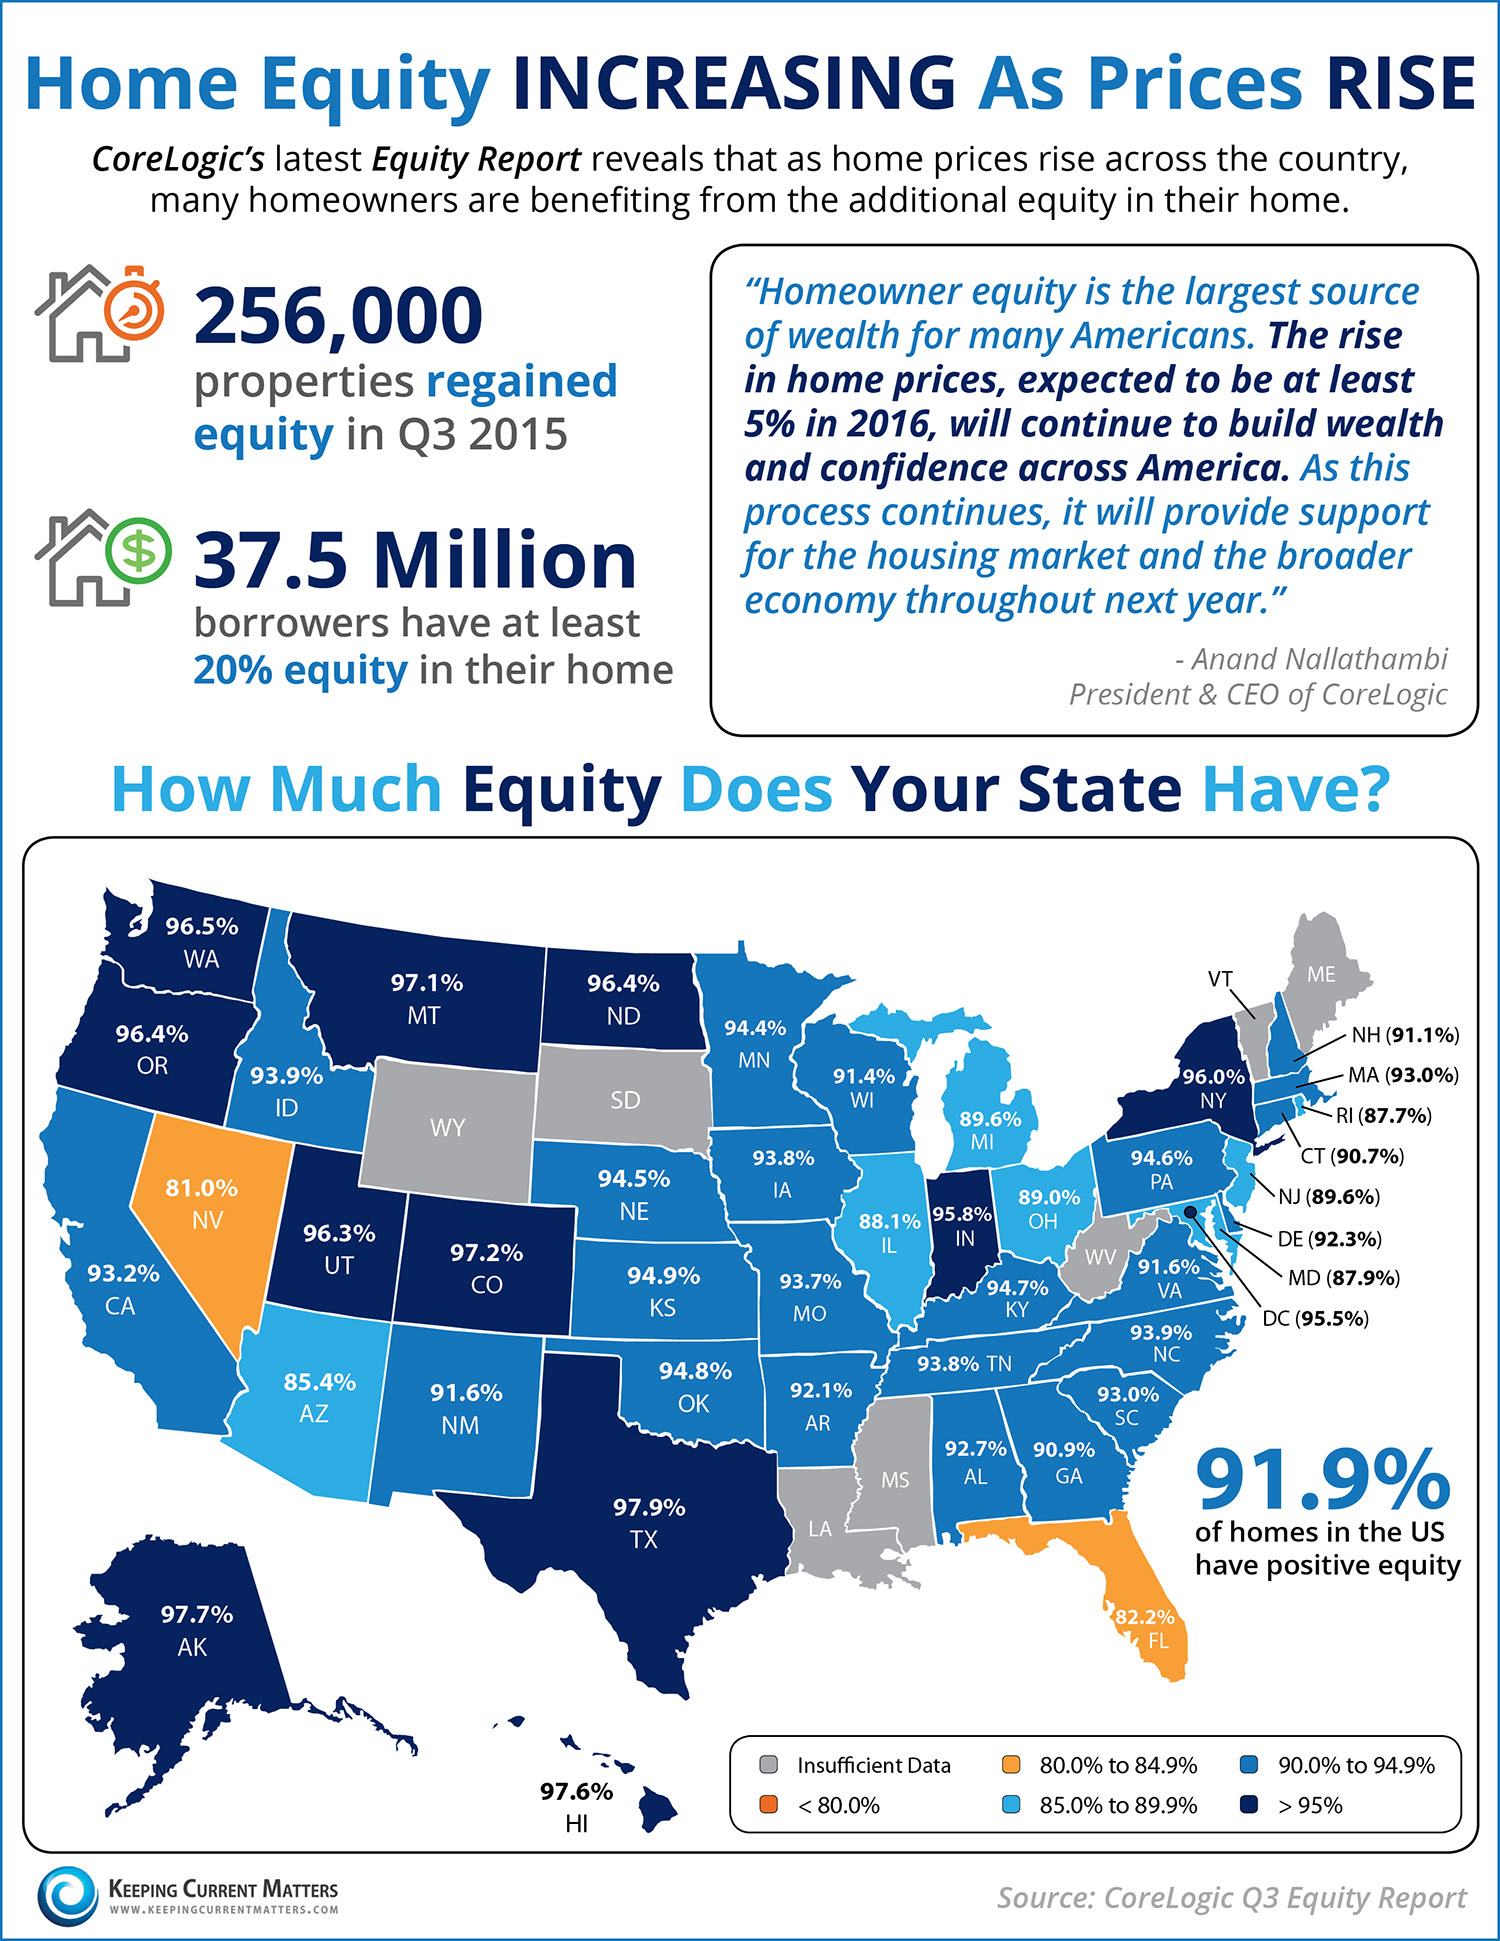 Home Equity Increasing as Home Prices Rise [INFOGRAPHIC] | Keeping Current Matters